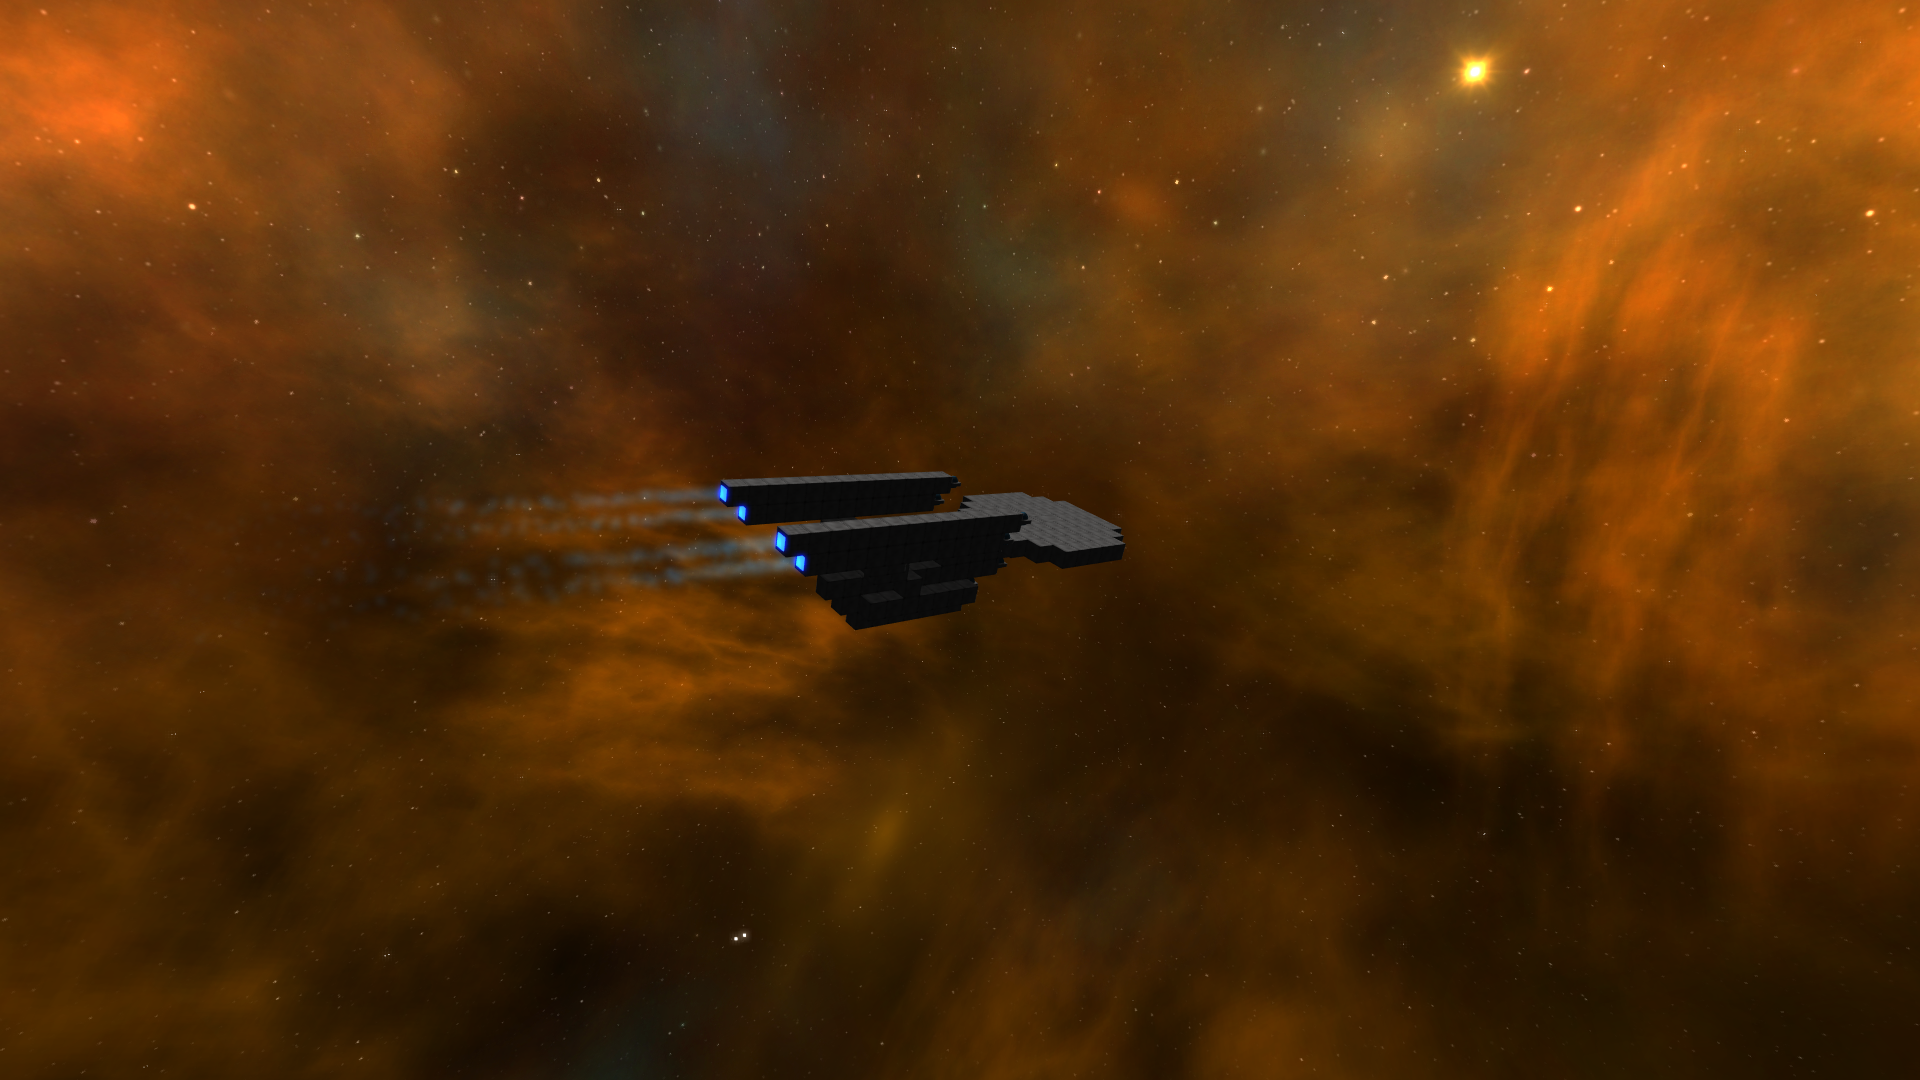 Enterprise refit in an orange nebula